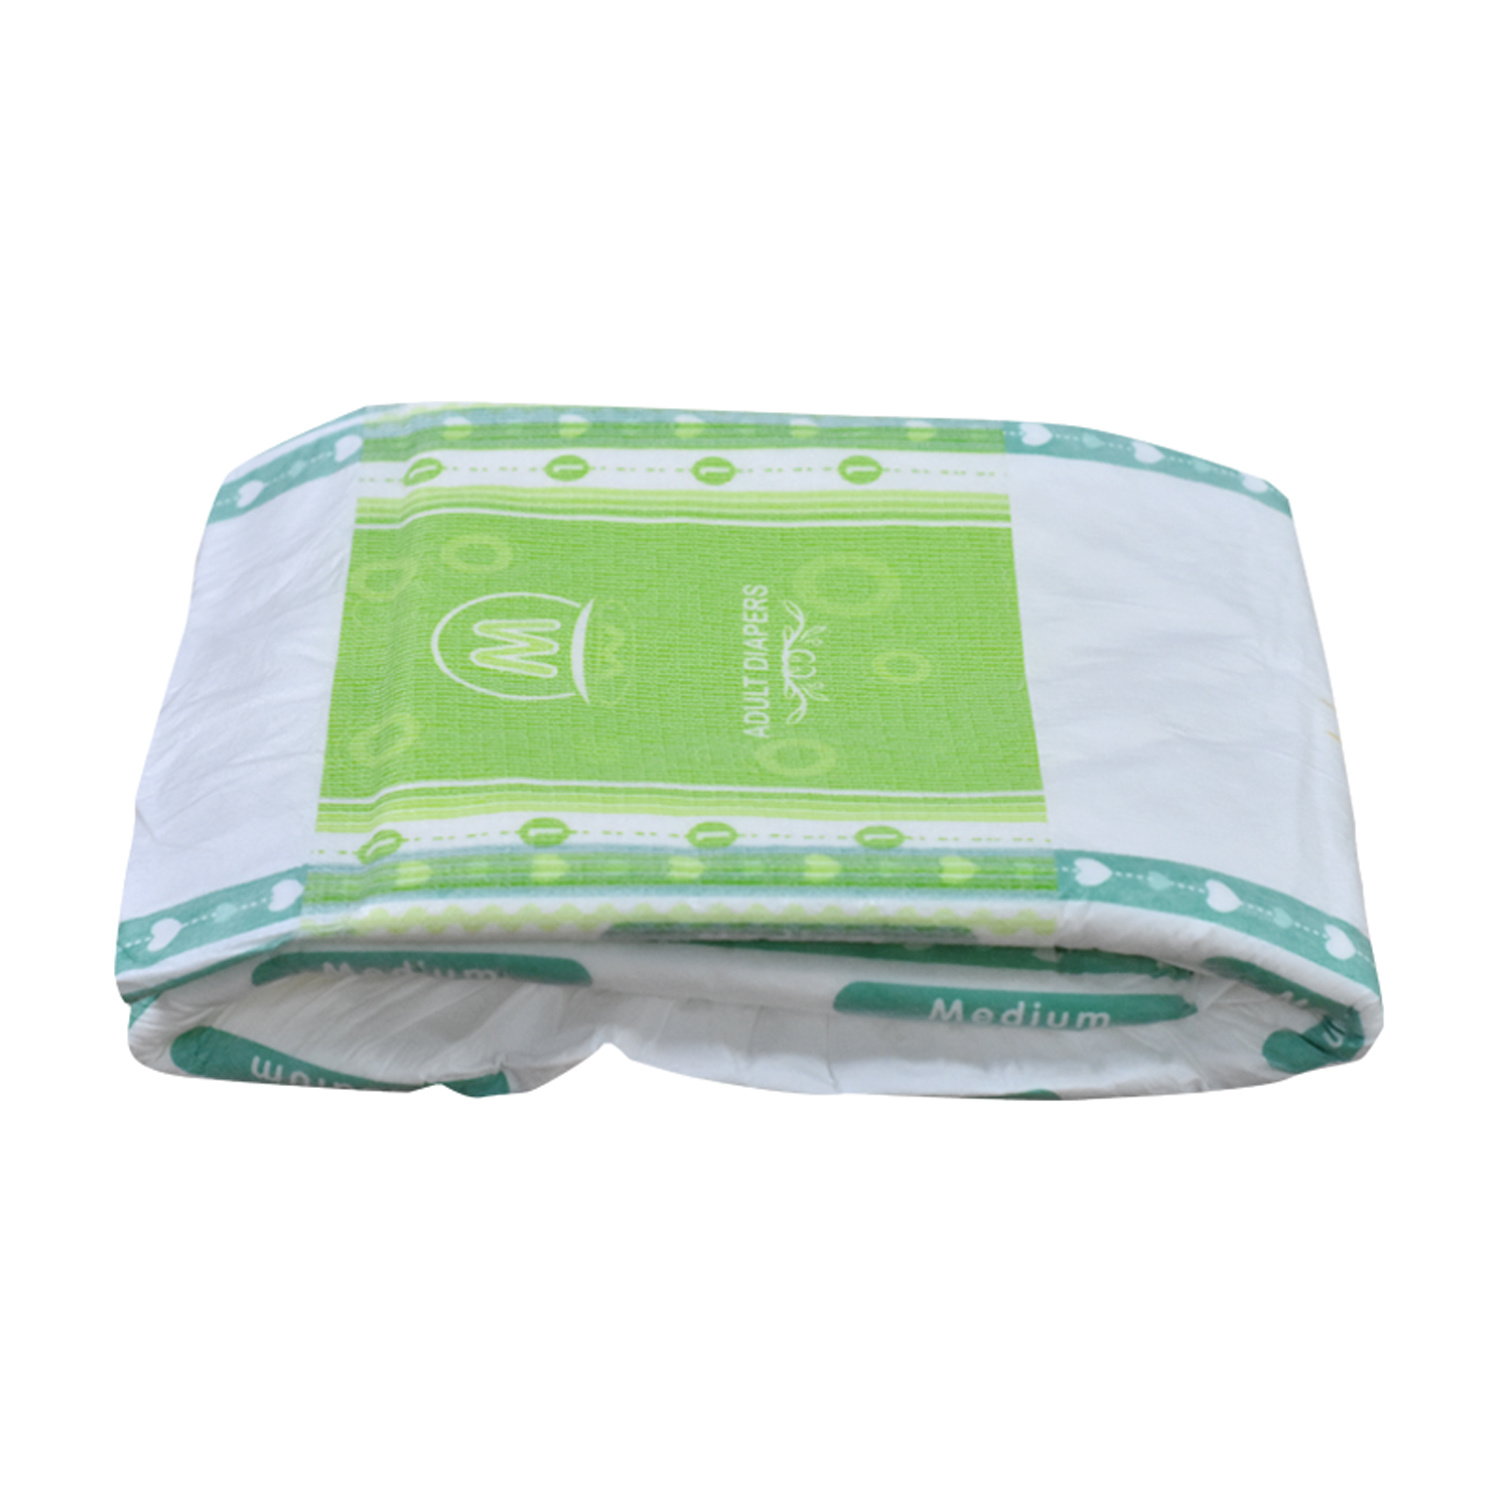 Disposable Adult Diapers Pull up for Adult Incontinence